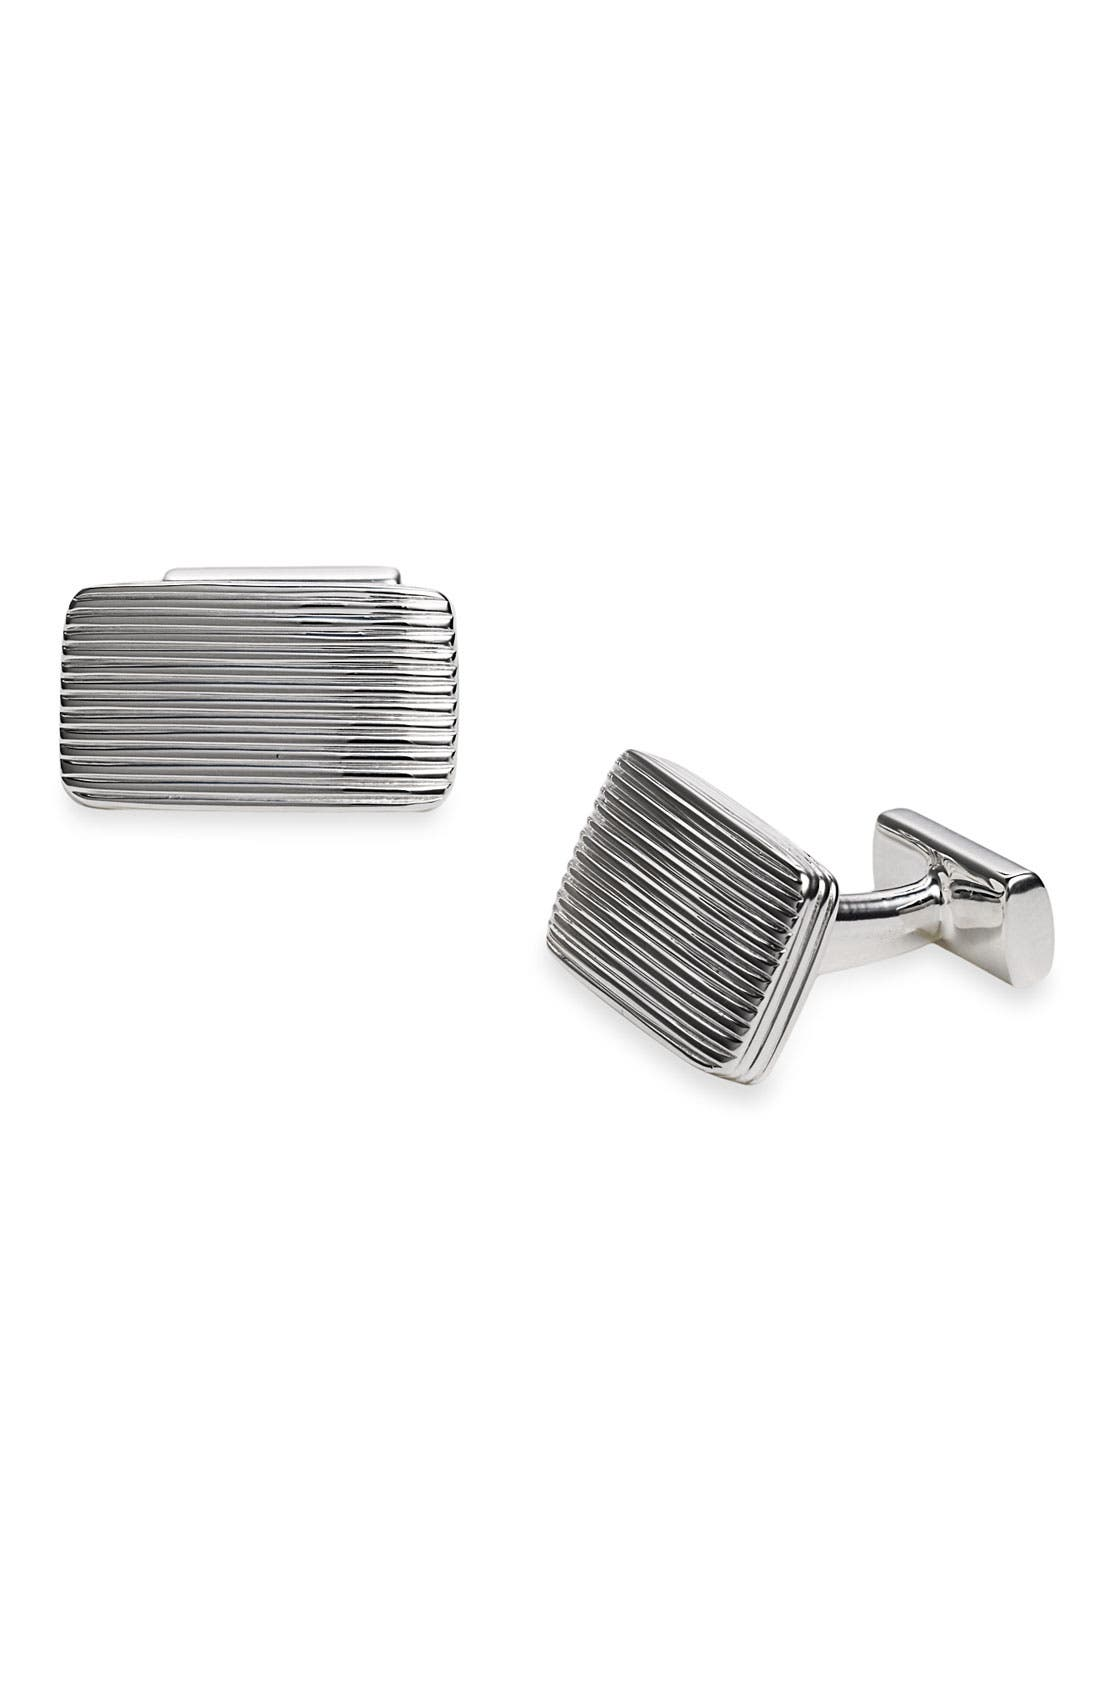 Main Image - Thomas Pink 'Georgian' Sterling Silver Cuff Links